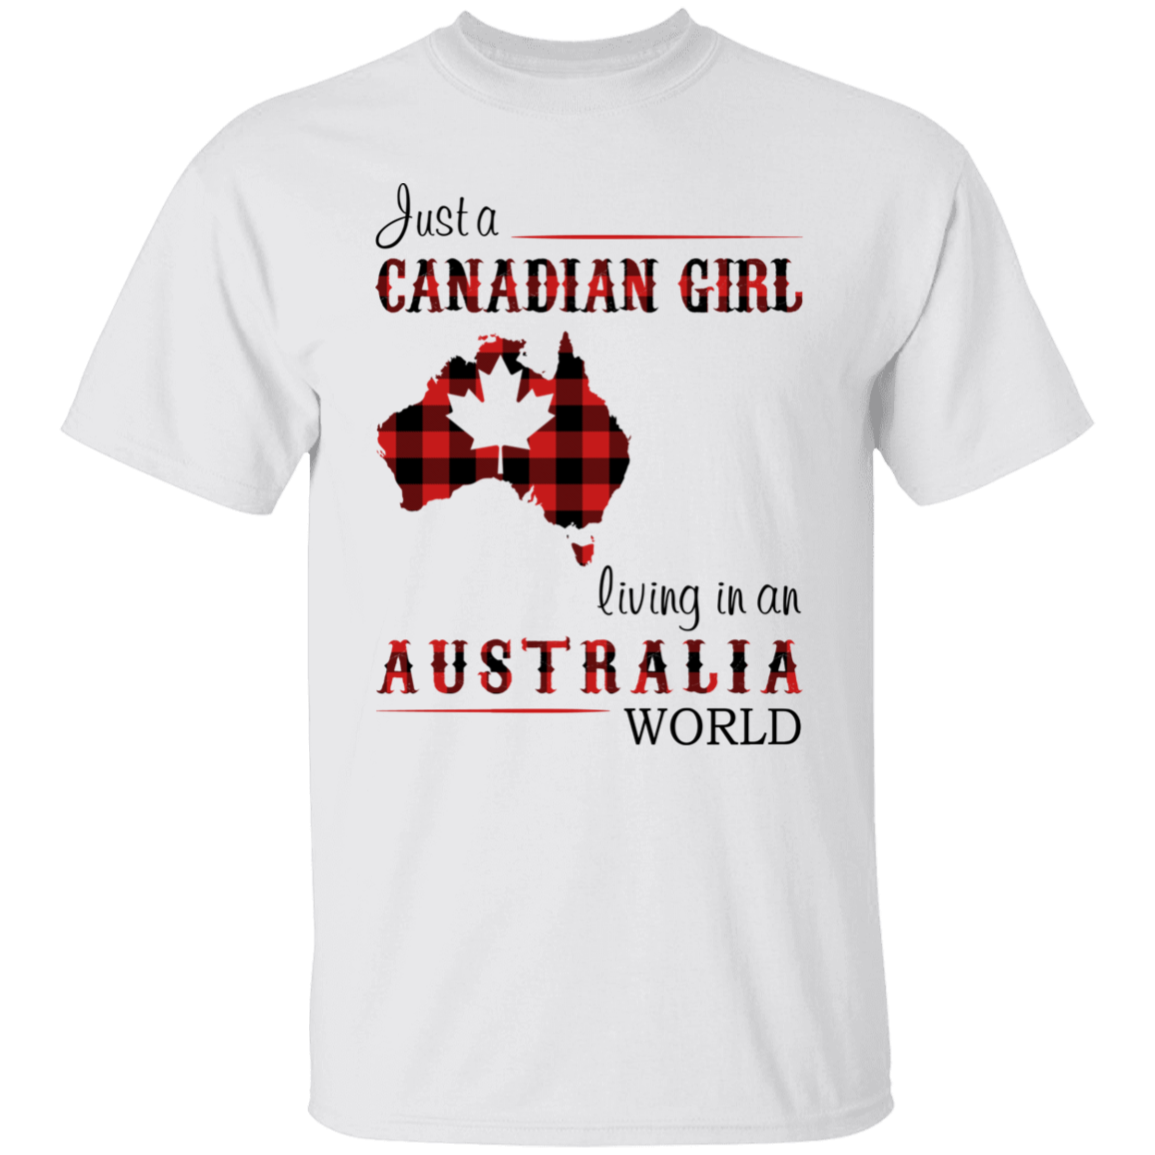 JUST A CANADIAN GIRL LIVING IN A AUSTRALIAN WORLD